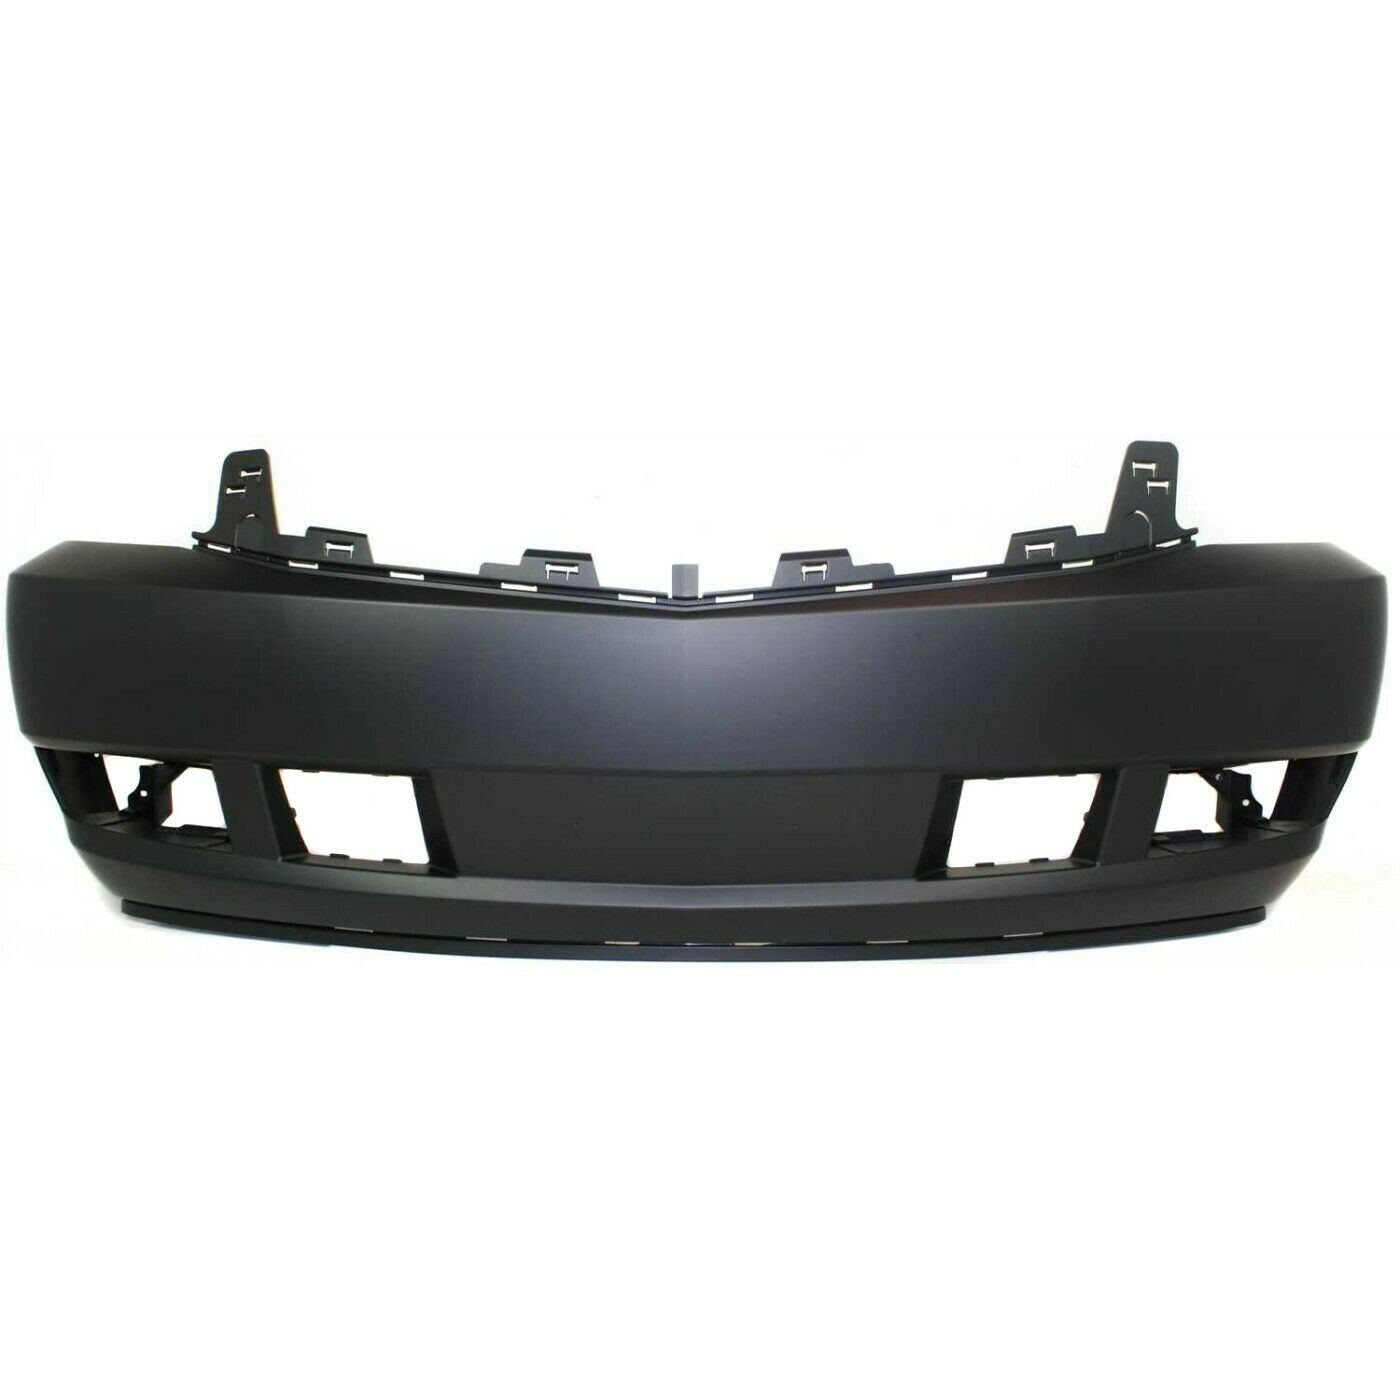 2007-2014 Cadillac Escalade Front Bumper Painted